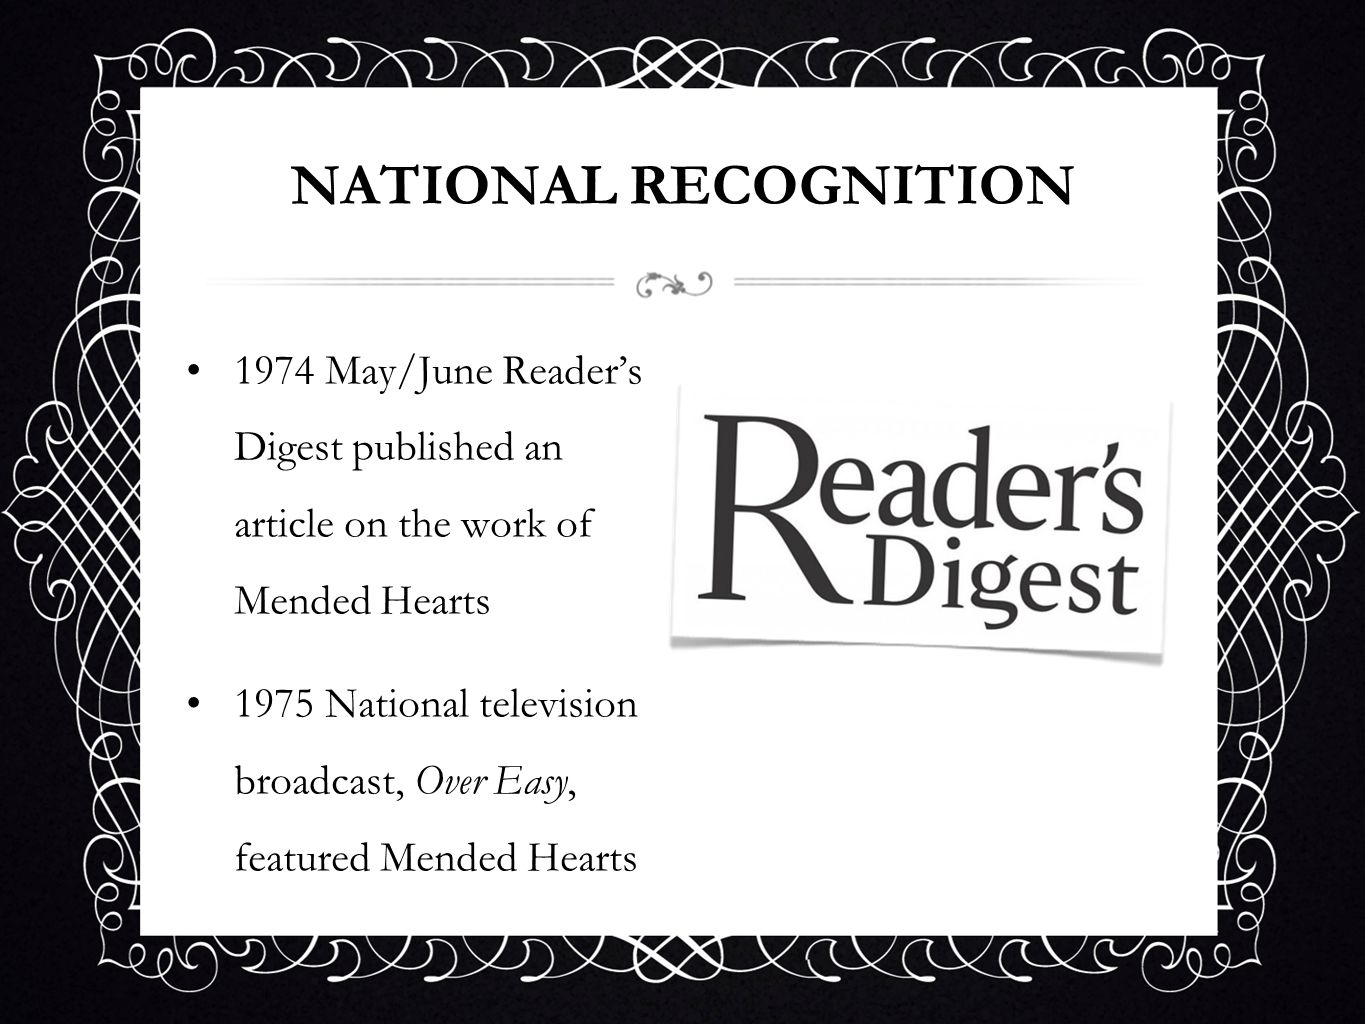 NATIONAL RECOGNITION 1974 May/June Reader's Digest published an article on the work of Mended Hearts.